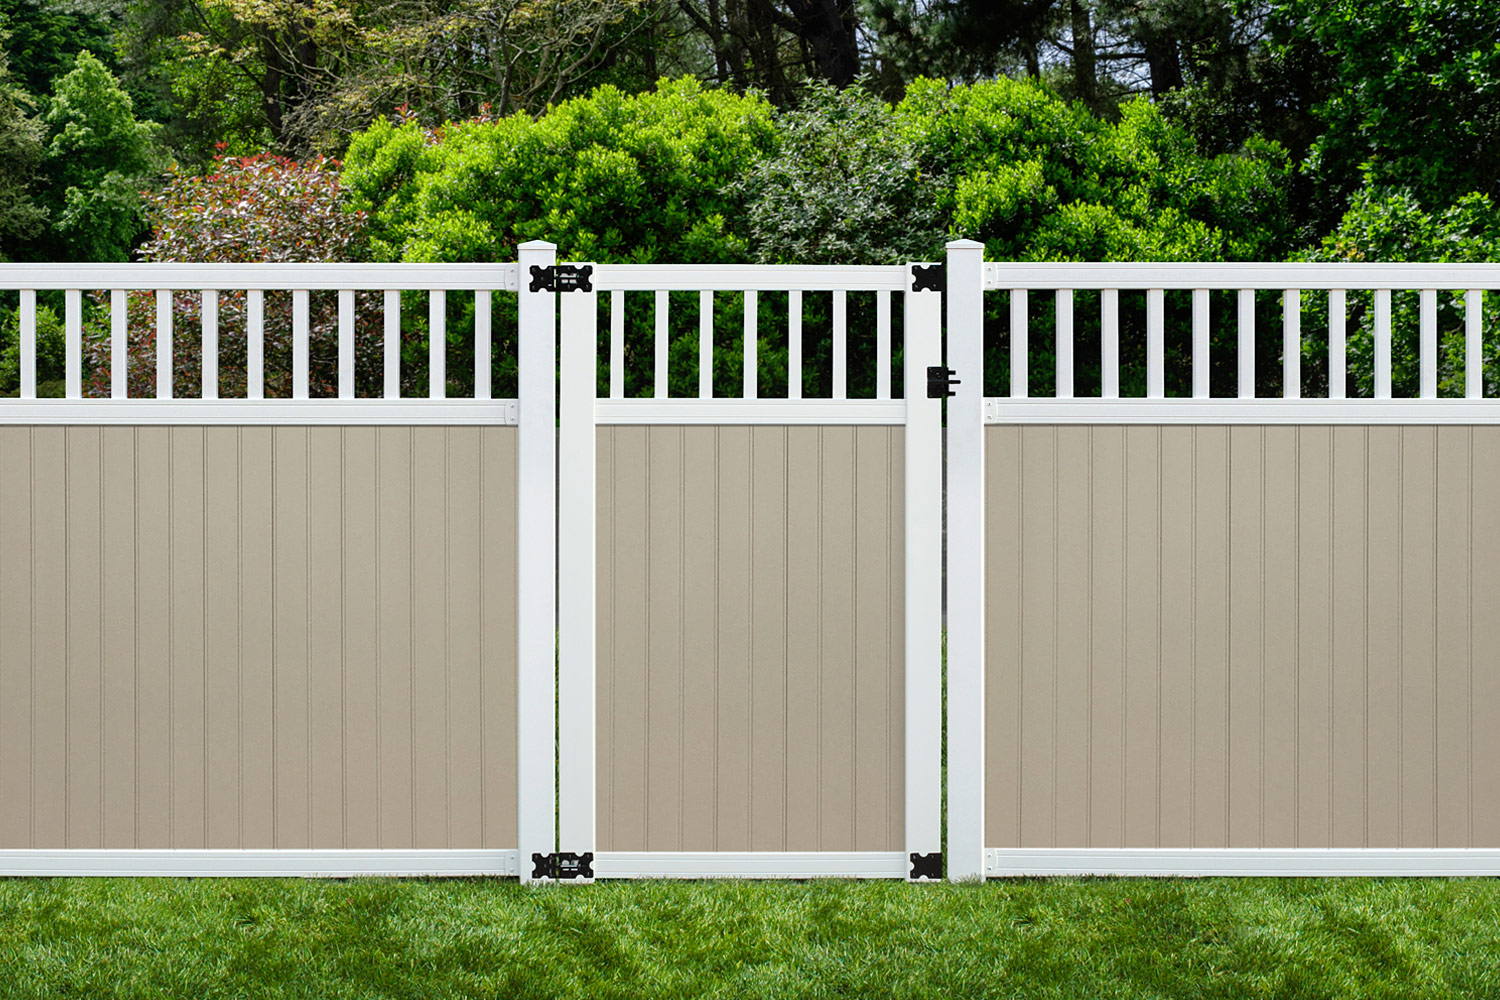 Sixth Avenue Building Products Spindle Top Privacy Fence and Gate - Tan-White